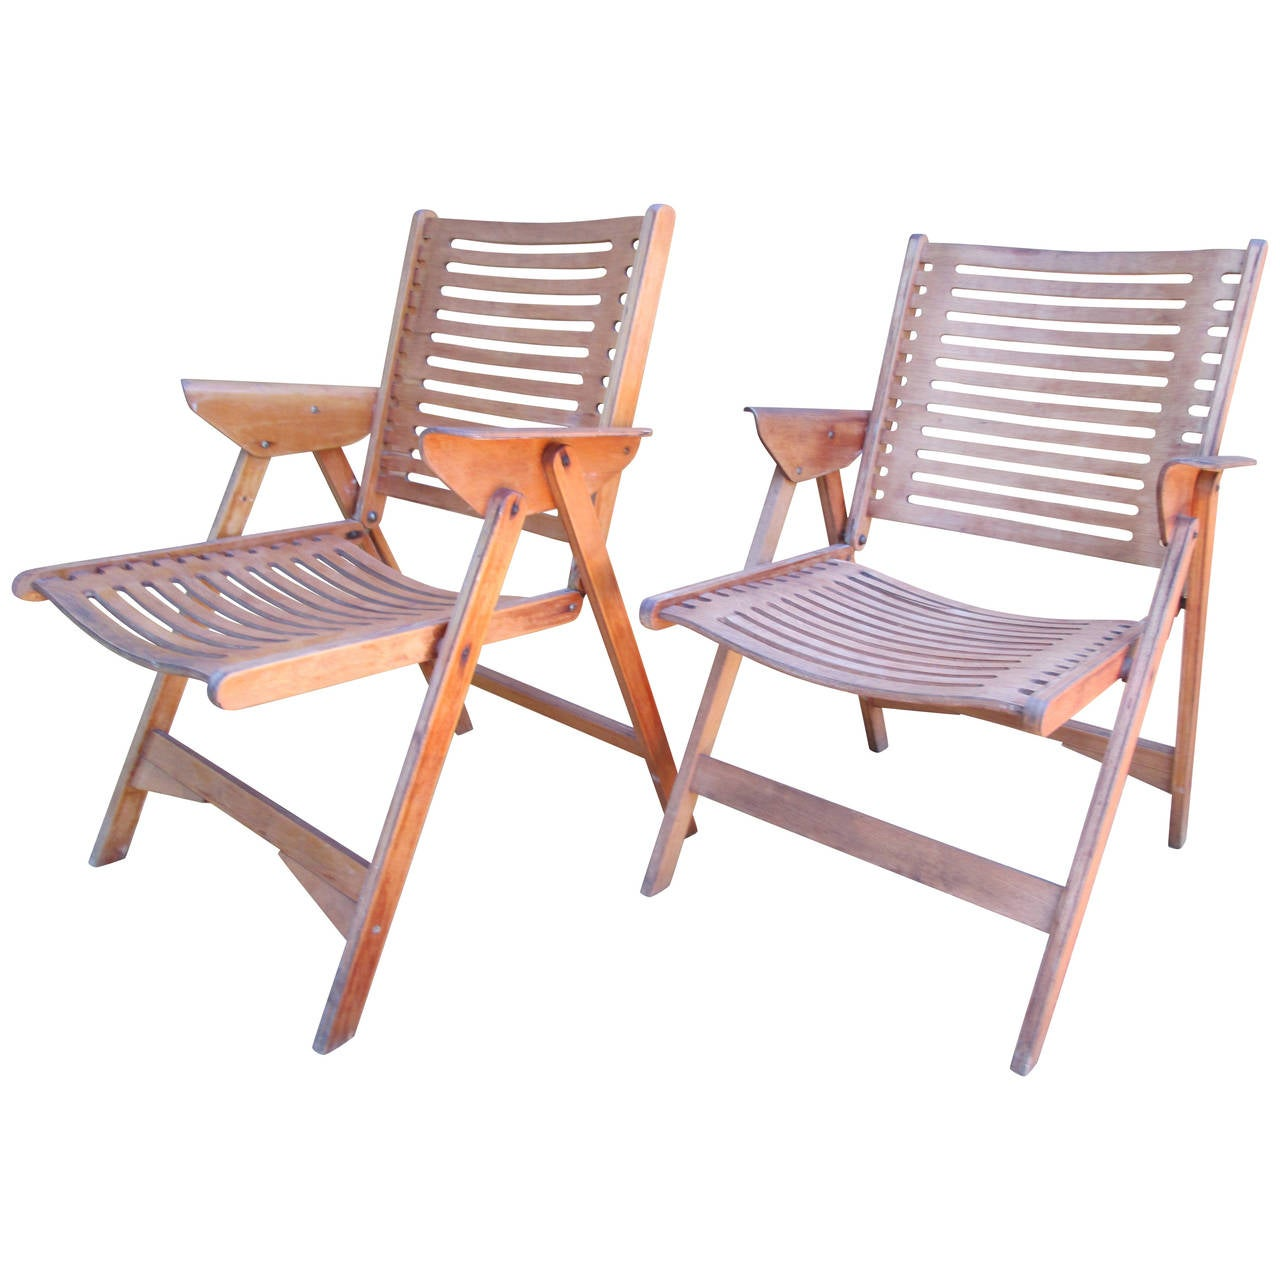 Pair of Mid Century Folding Deck Chairs at 1stdibs